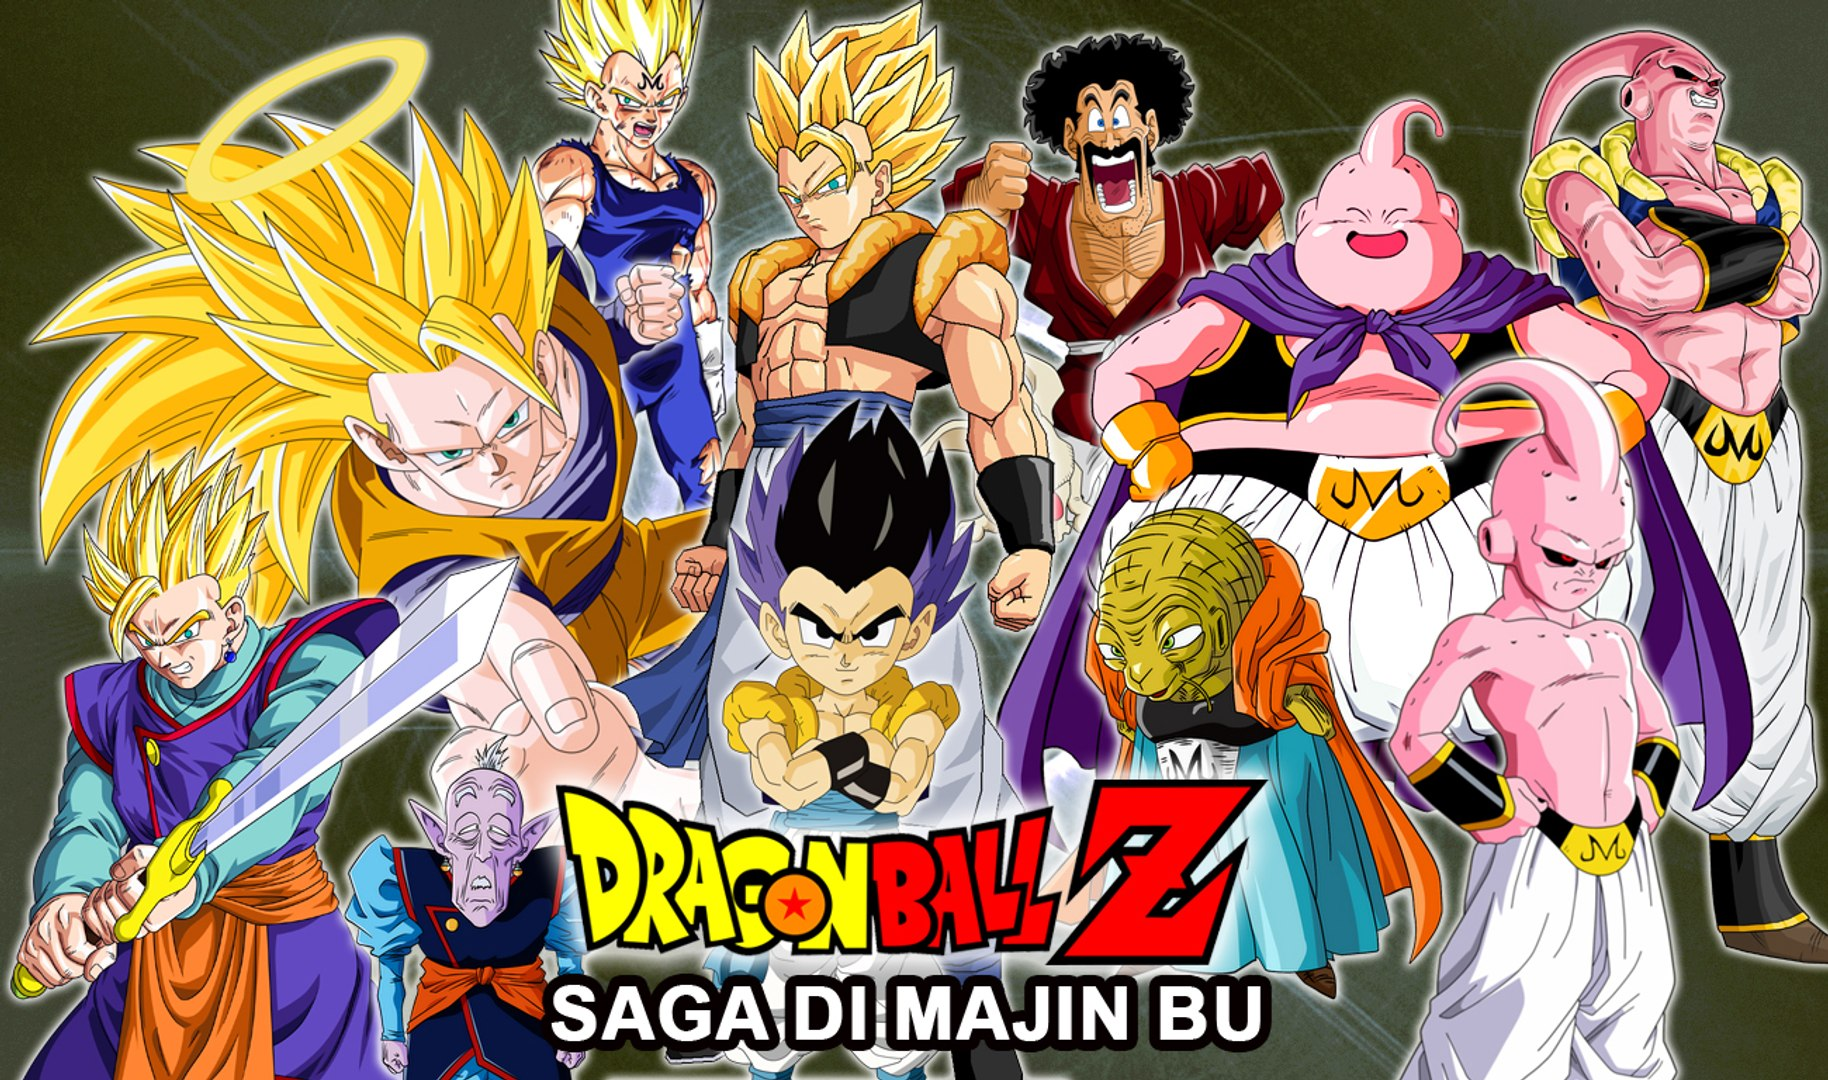 Dragonball Z Saga Majin Bu In 15 Minuti Video Dailymotion